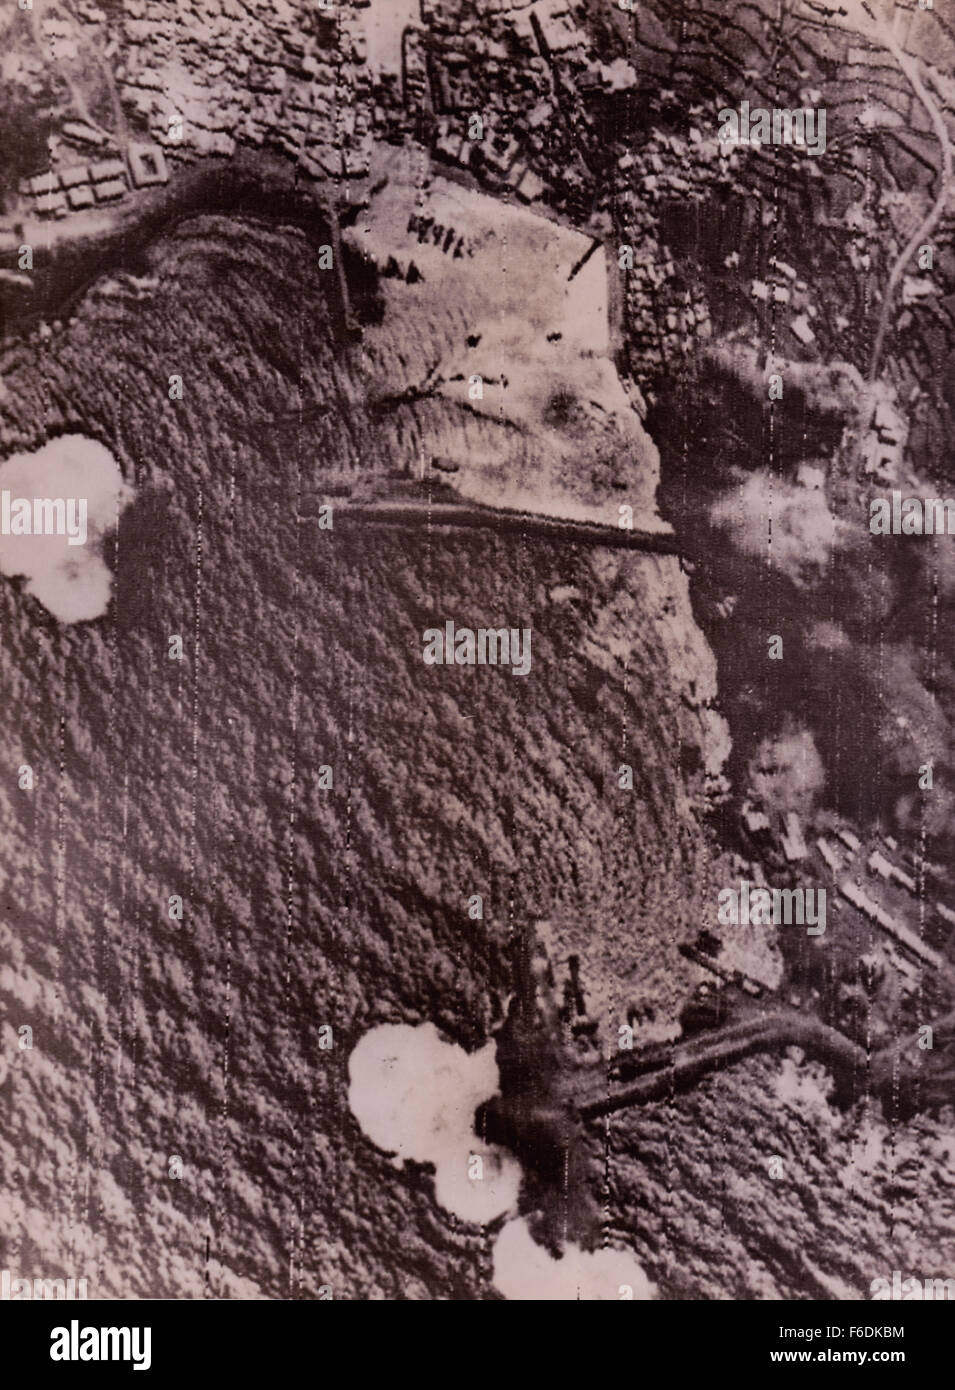 709. Italy.islands of Pantellaria pounded by the allied airforce.Bombs can be seen bursting on the harbour facilities. Stock Photo